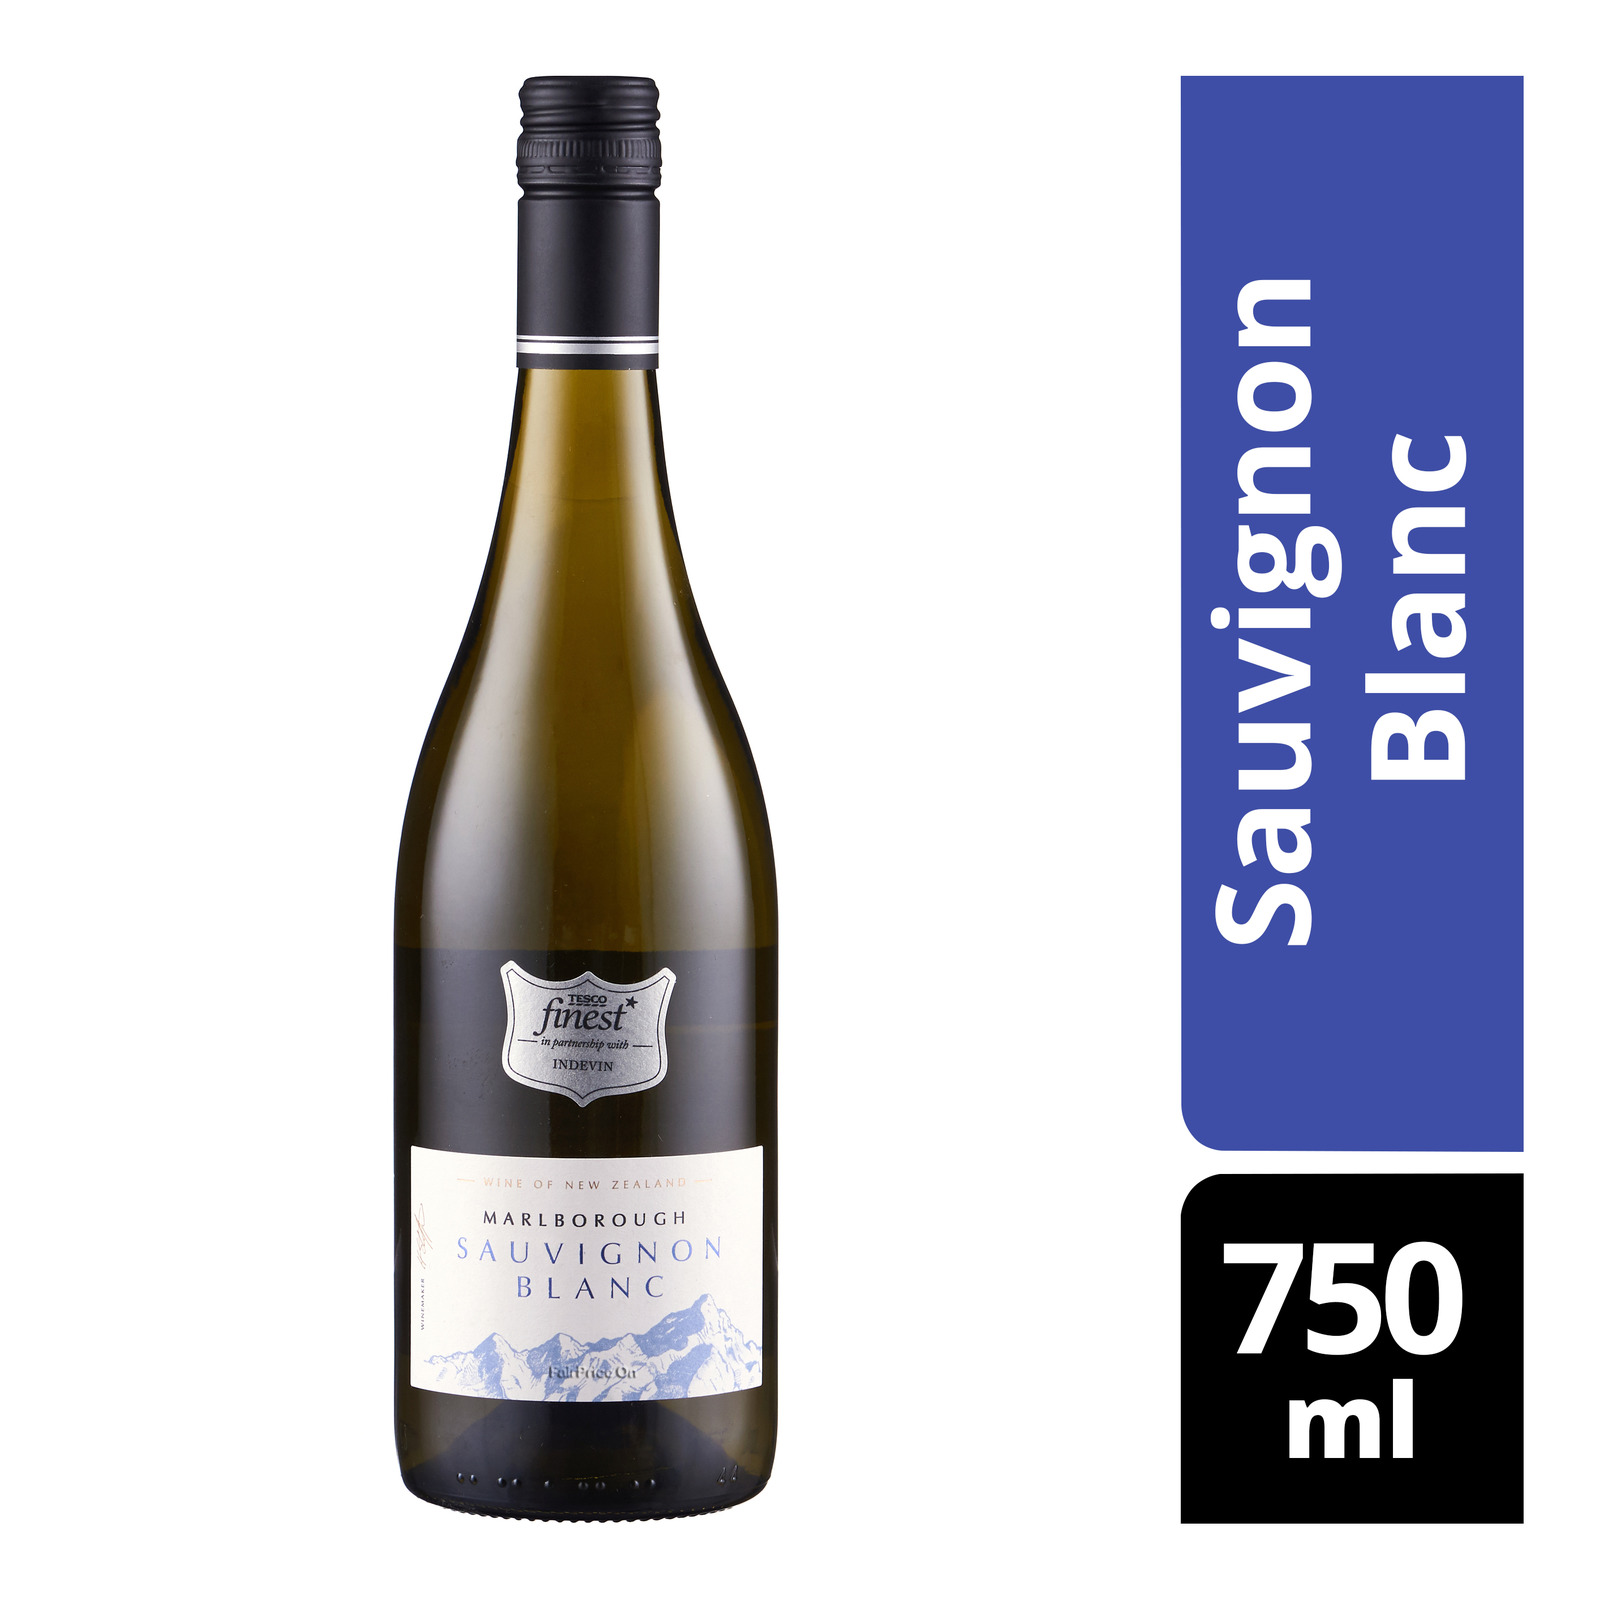 Tesco Finest White Wine - Marlborough (Sauvignon Blanc)